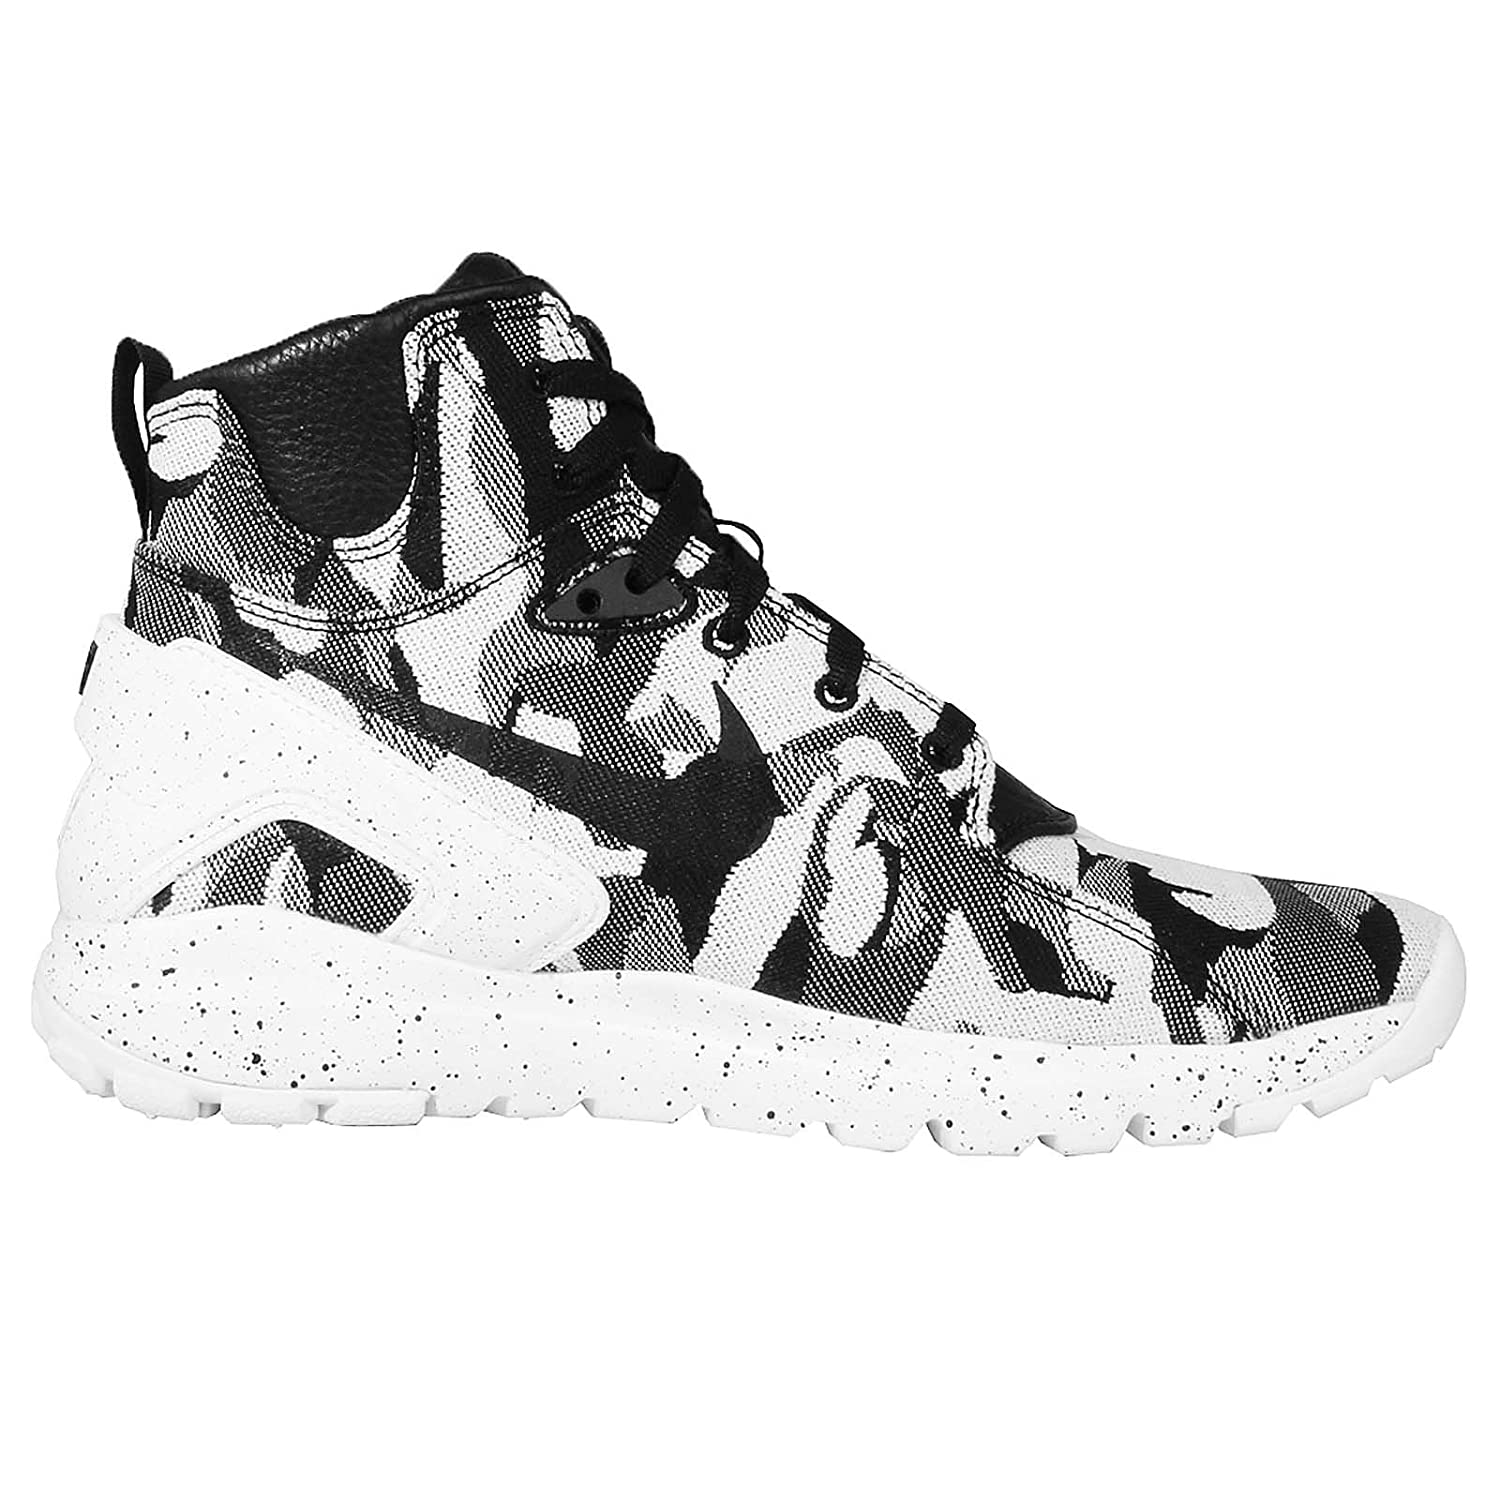 low priced eb8ca d6c5c Nike Men s Koth Ultra Mid JCRD Trainers Multicolour Size  11.5   Amazon.co.uk  Shoes   Bags